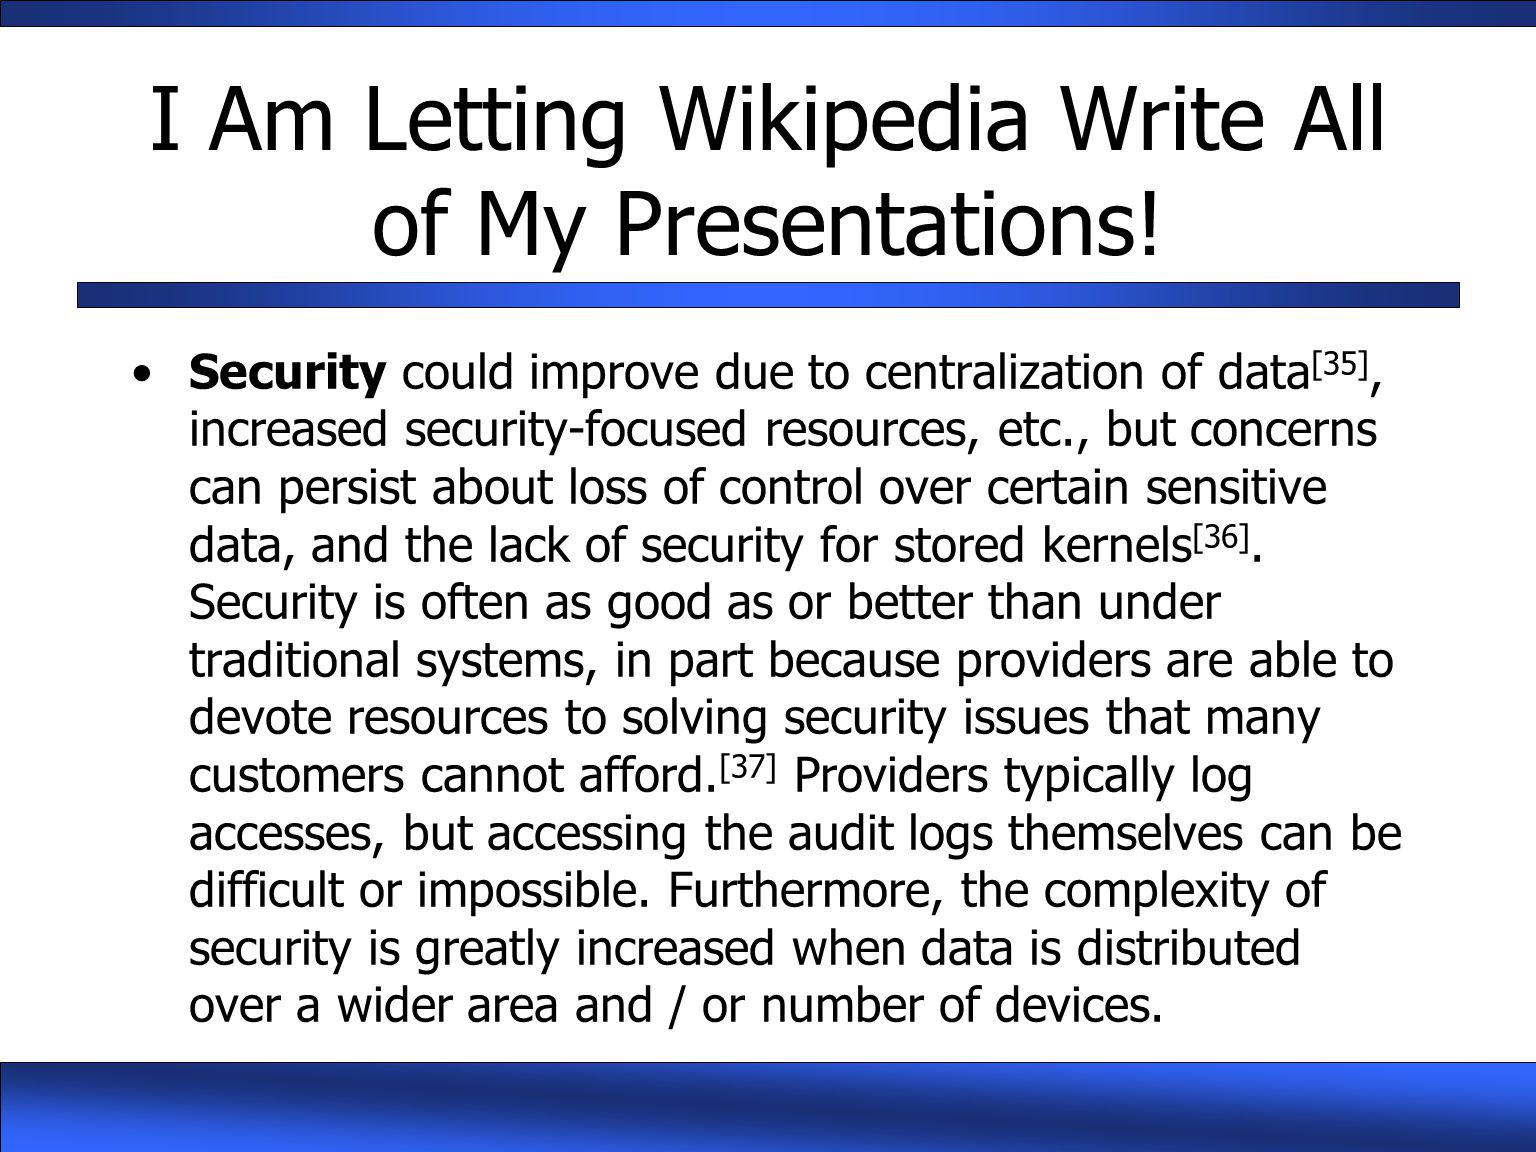 I Am Letting Wikipedia Write All of My Presentations! Security could improve due to centralization of data [35], increased security-focused resources,